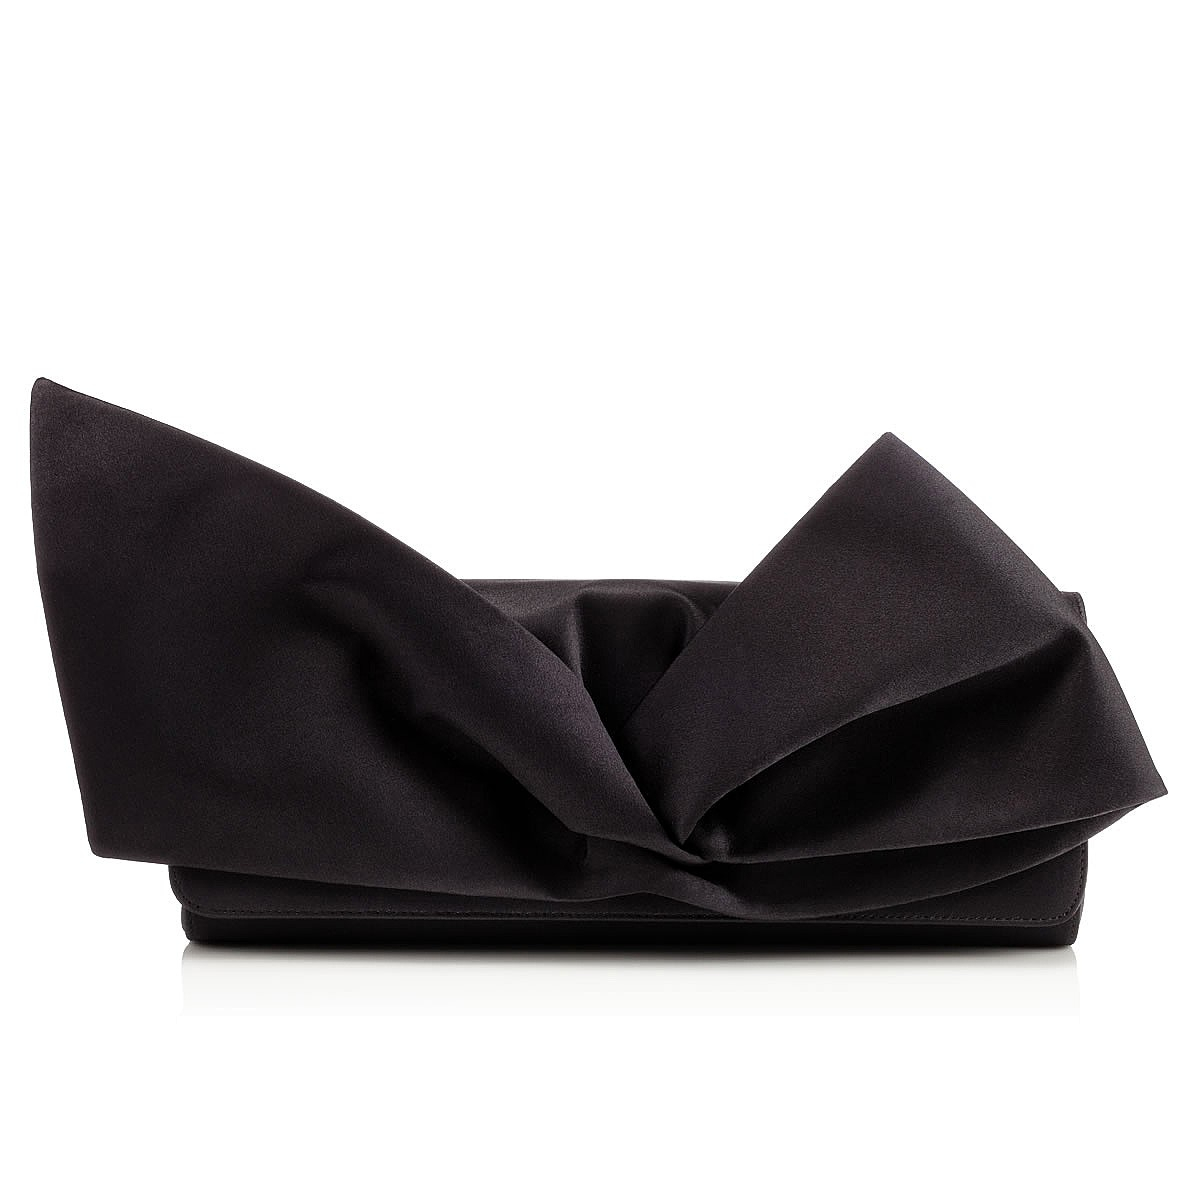 yves saint laurent bags outlet - Christian louboutin Loubibow Clutch in Black | Lyst